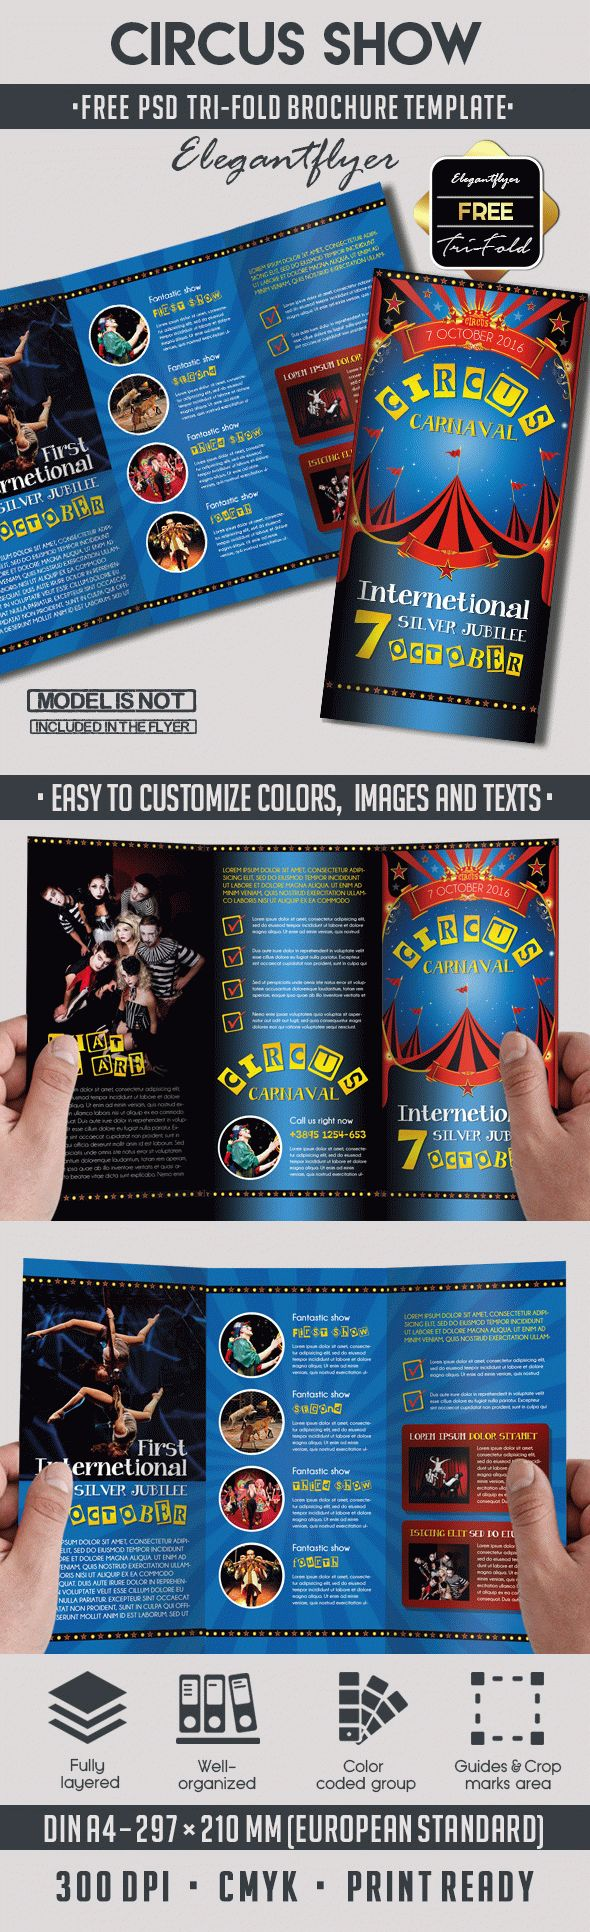 Circus free psd tri fold psd brochure template by for Tri fold brochure template photoshop free